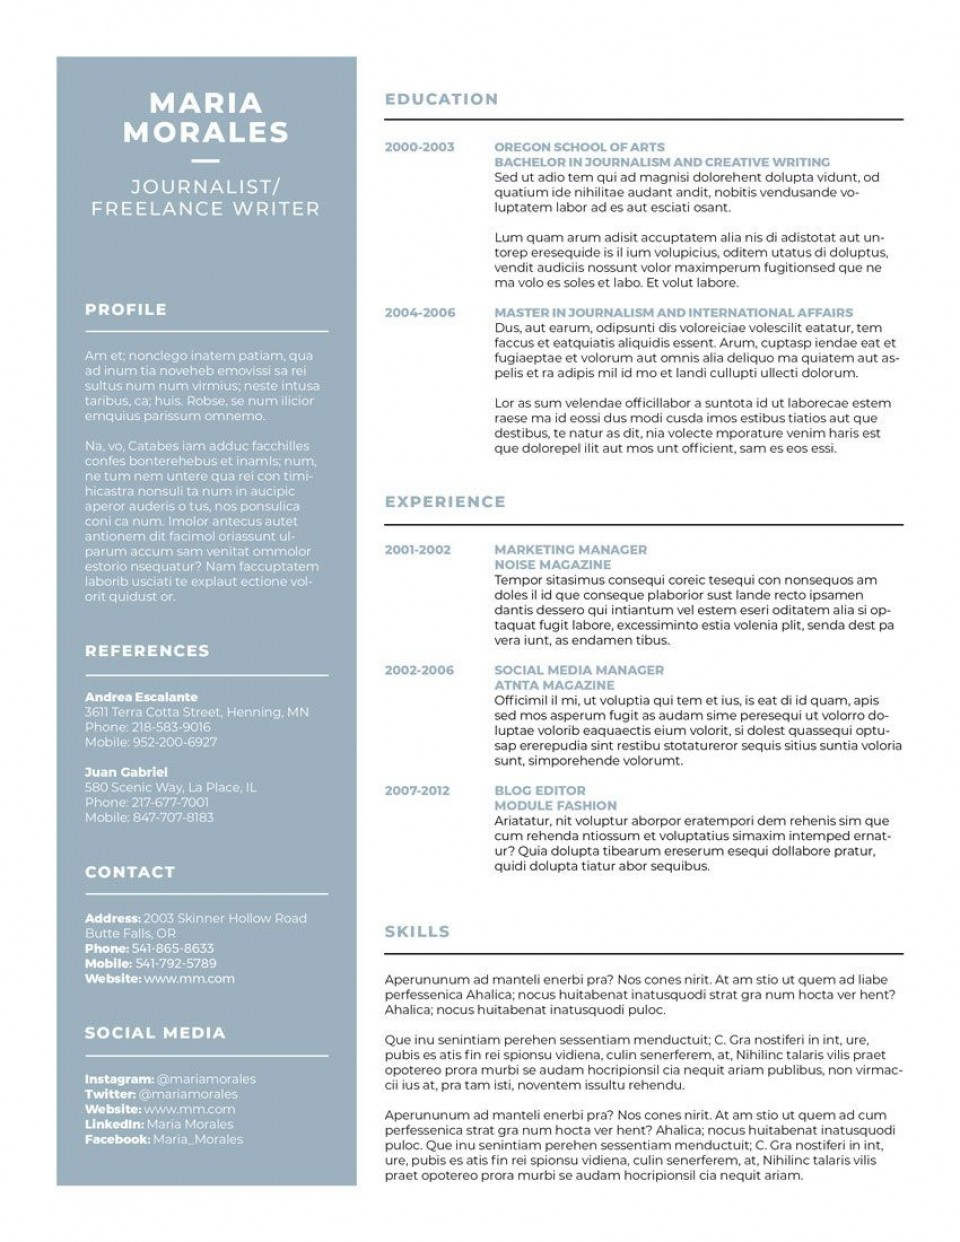 009 Incredible How To Create A Resume Template In Photoshop Concept 960